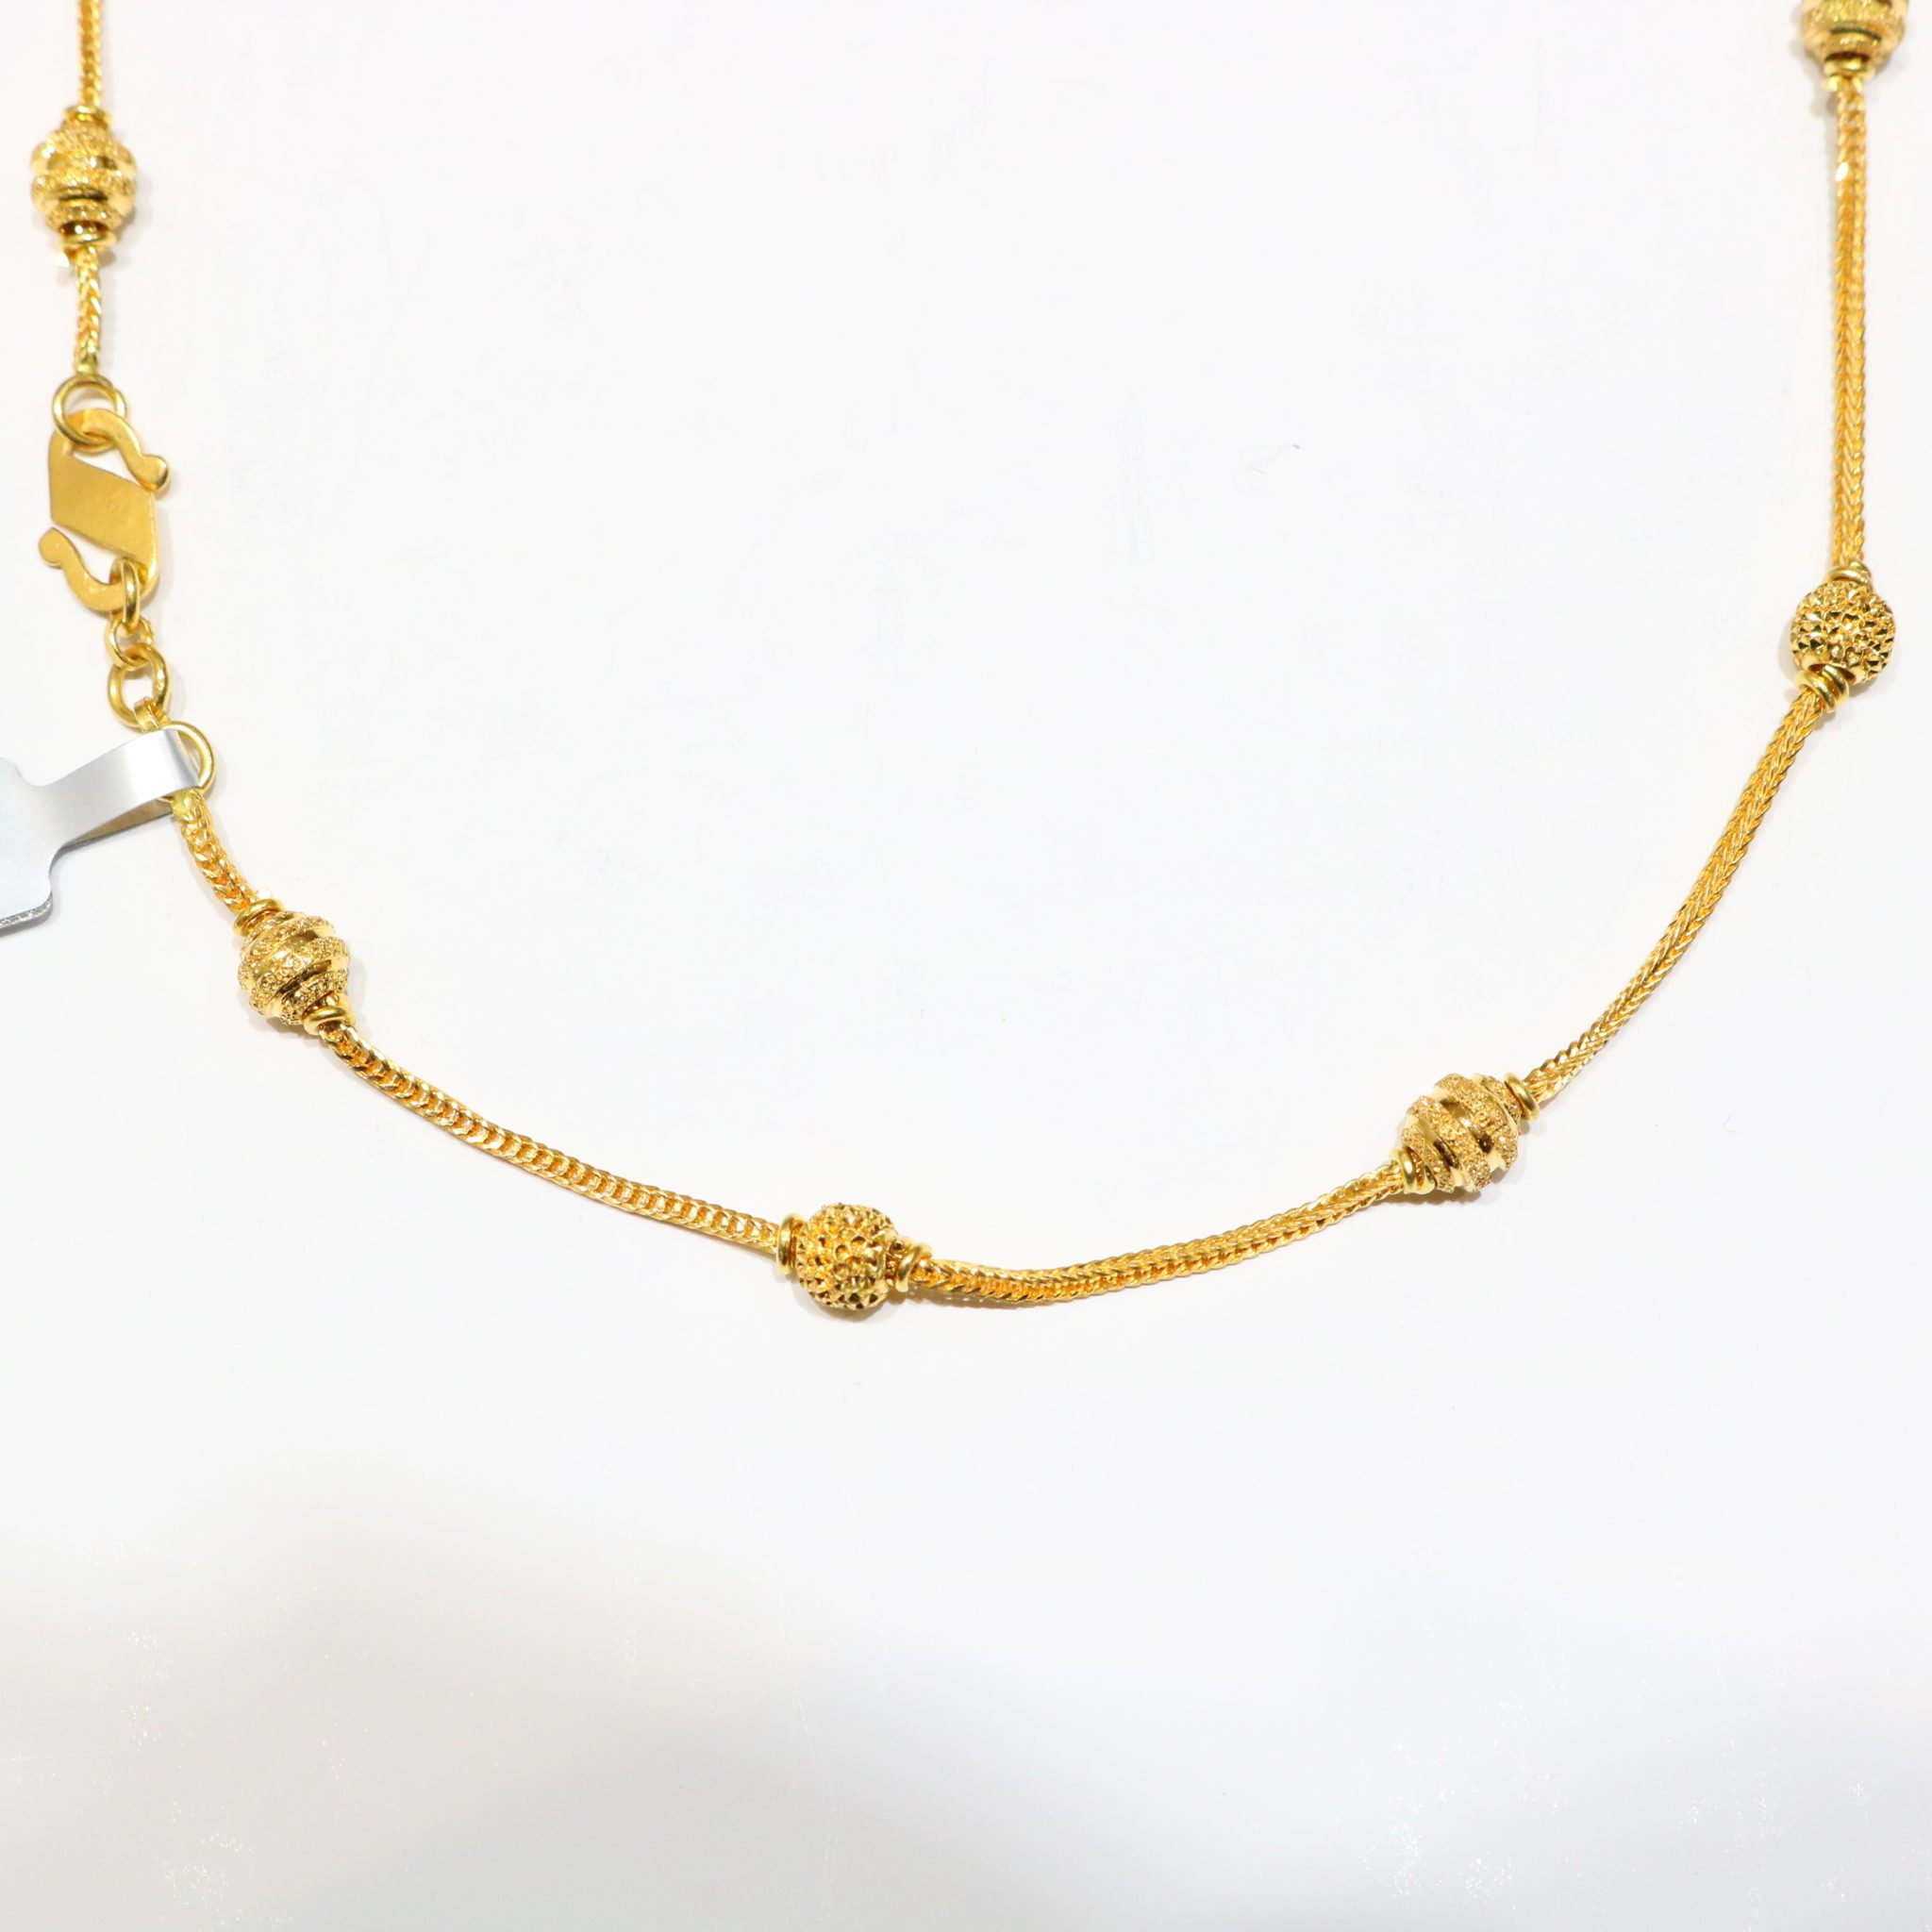 decorative chains victorian gold necklace french chain